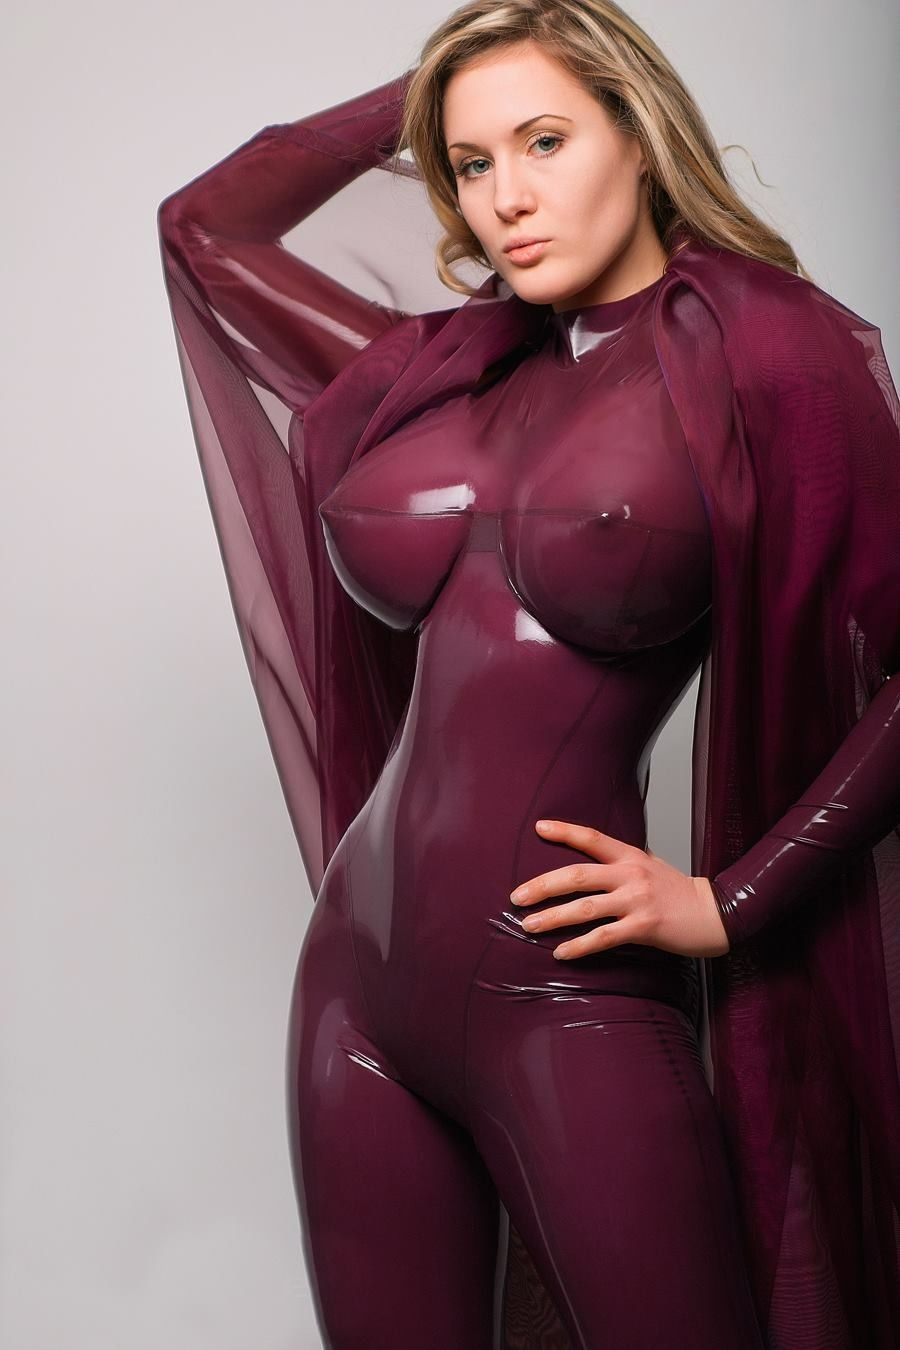 Sexy in latex